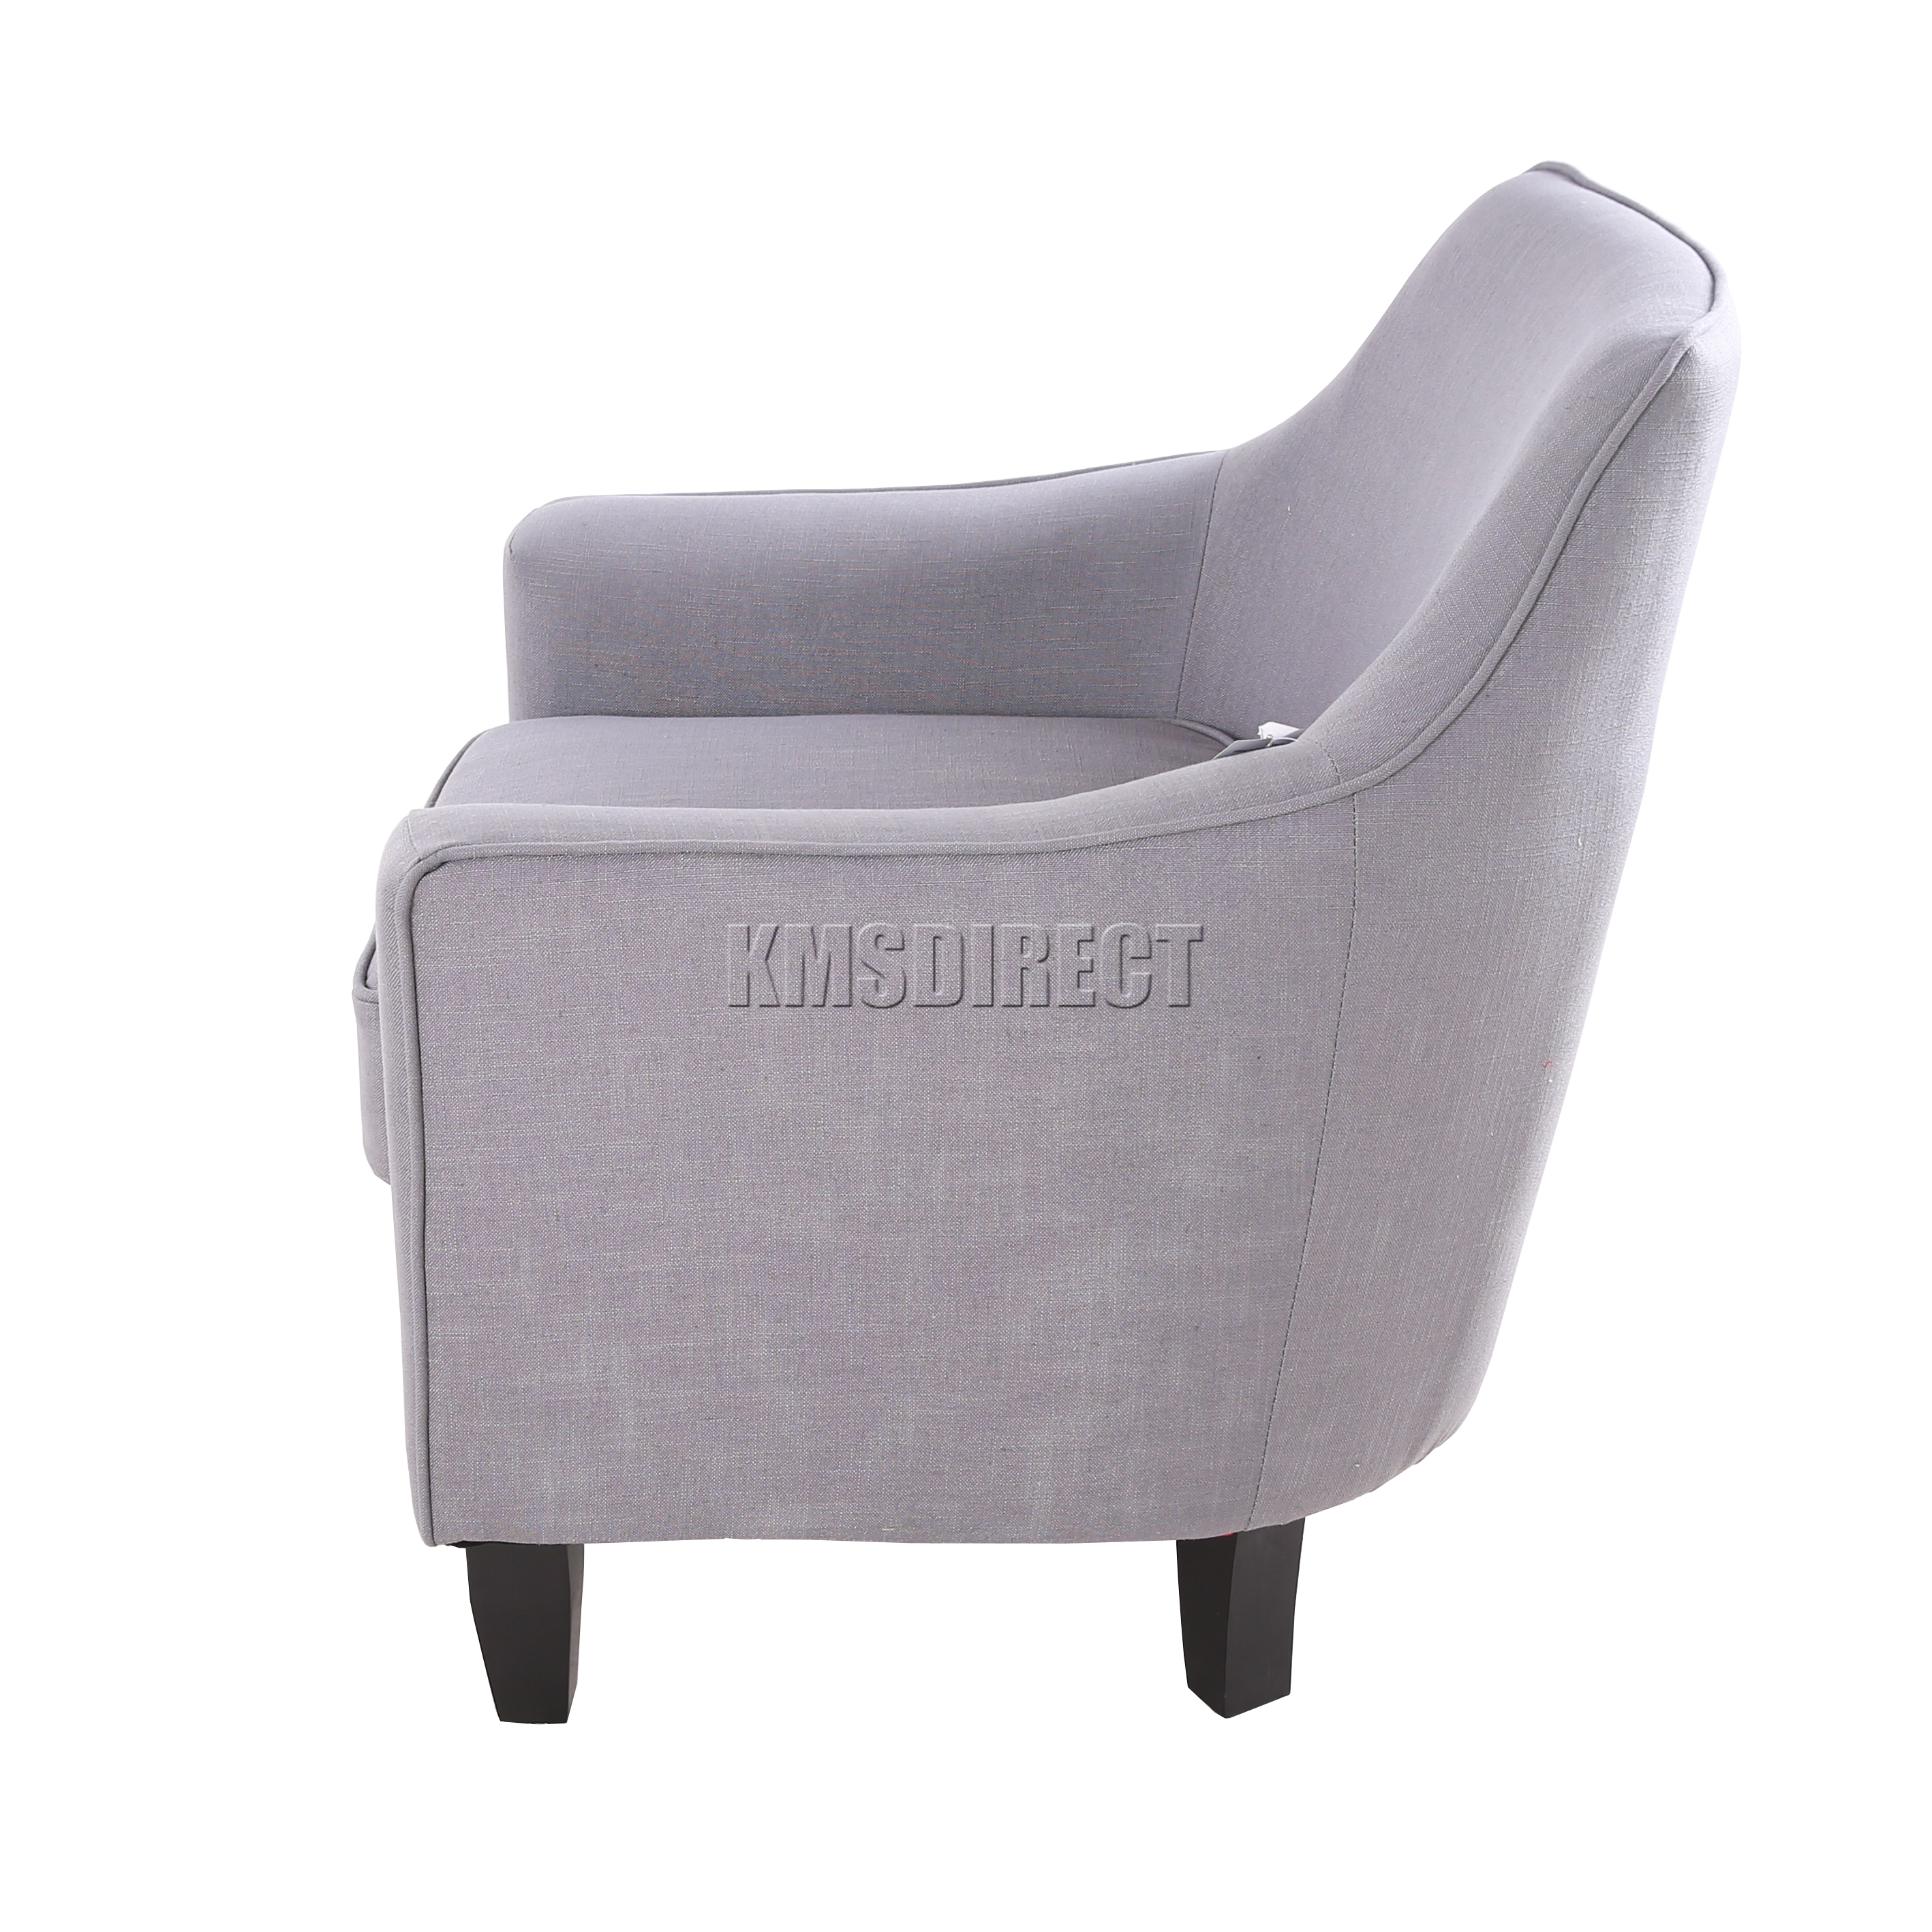 tub chair grey covers in birmingham foxhunter linen fabric armchair dining living